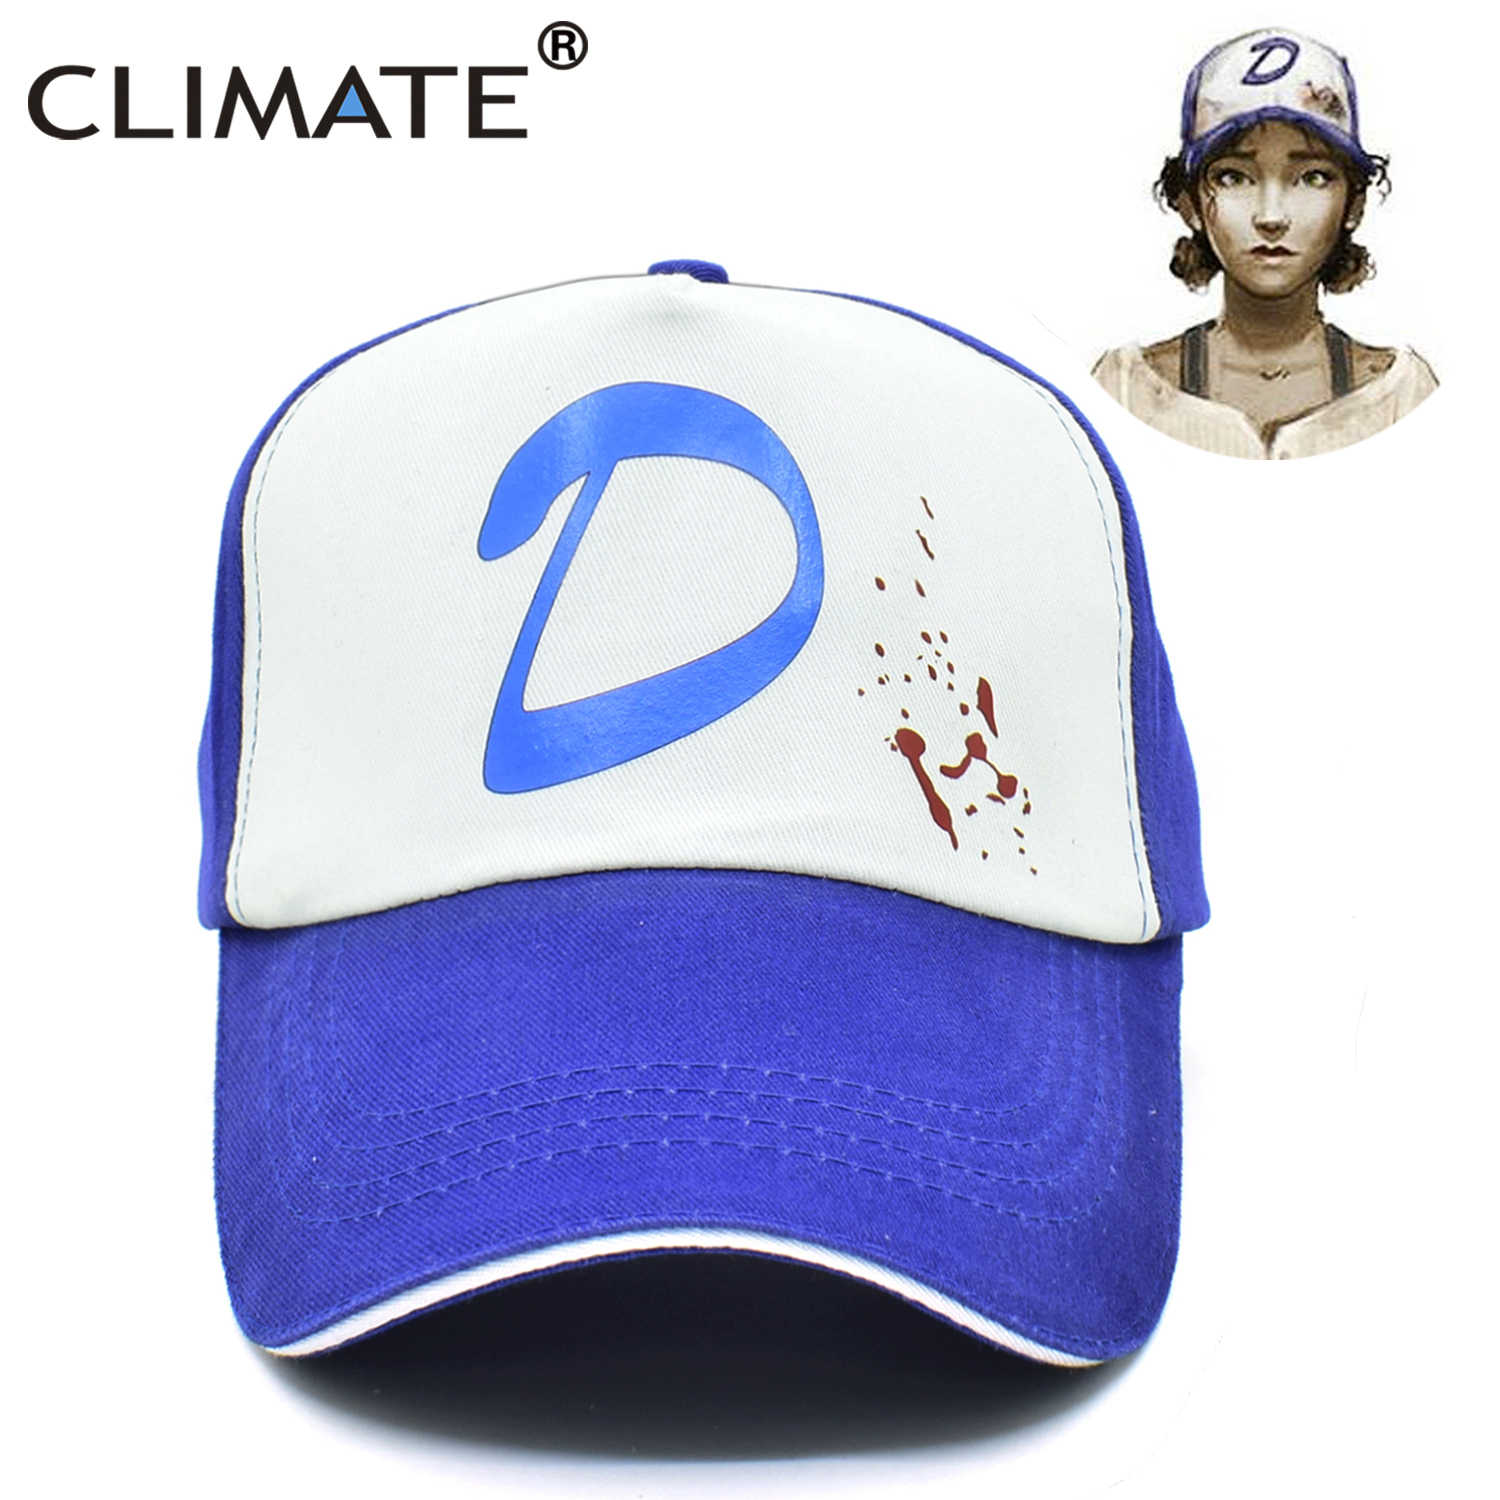 a5356ea5861 ... CLIMATE Clementine The Walking Dead Game Cap Clementine Hat Cap Clem s  Cosplay Trucker Cap Girl Coser ...